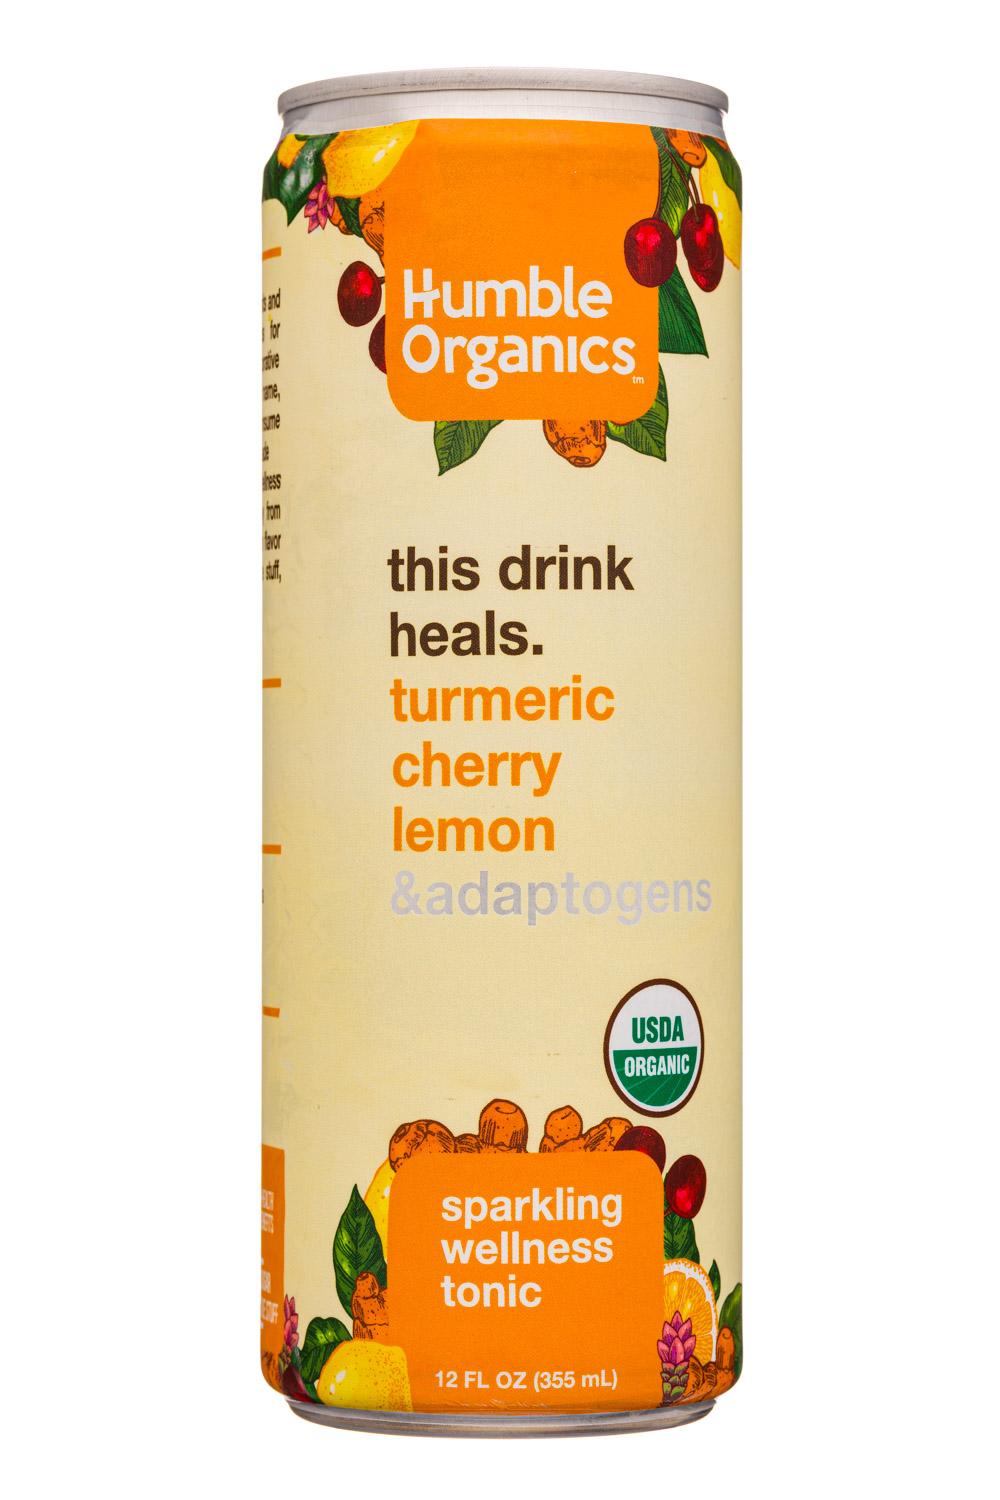 Turmeric Cherry Lemon & Adaptogens